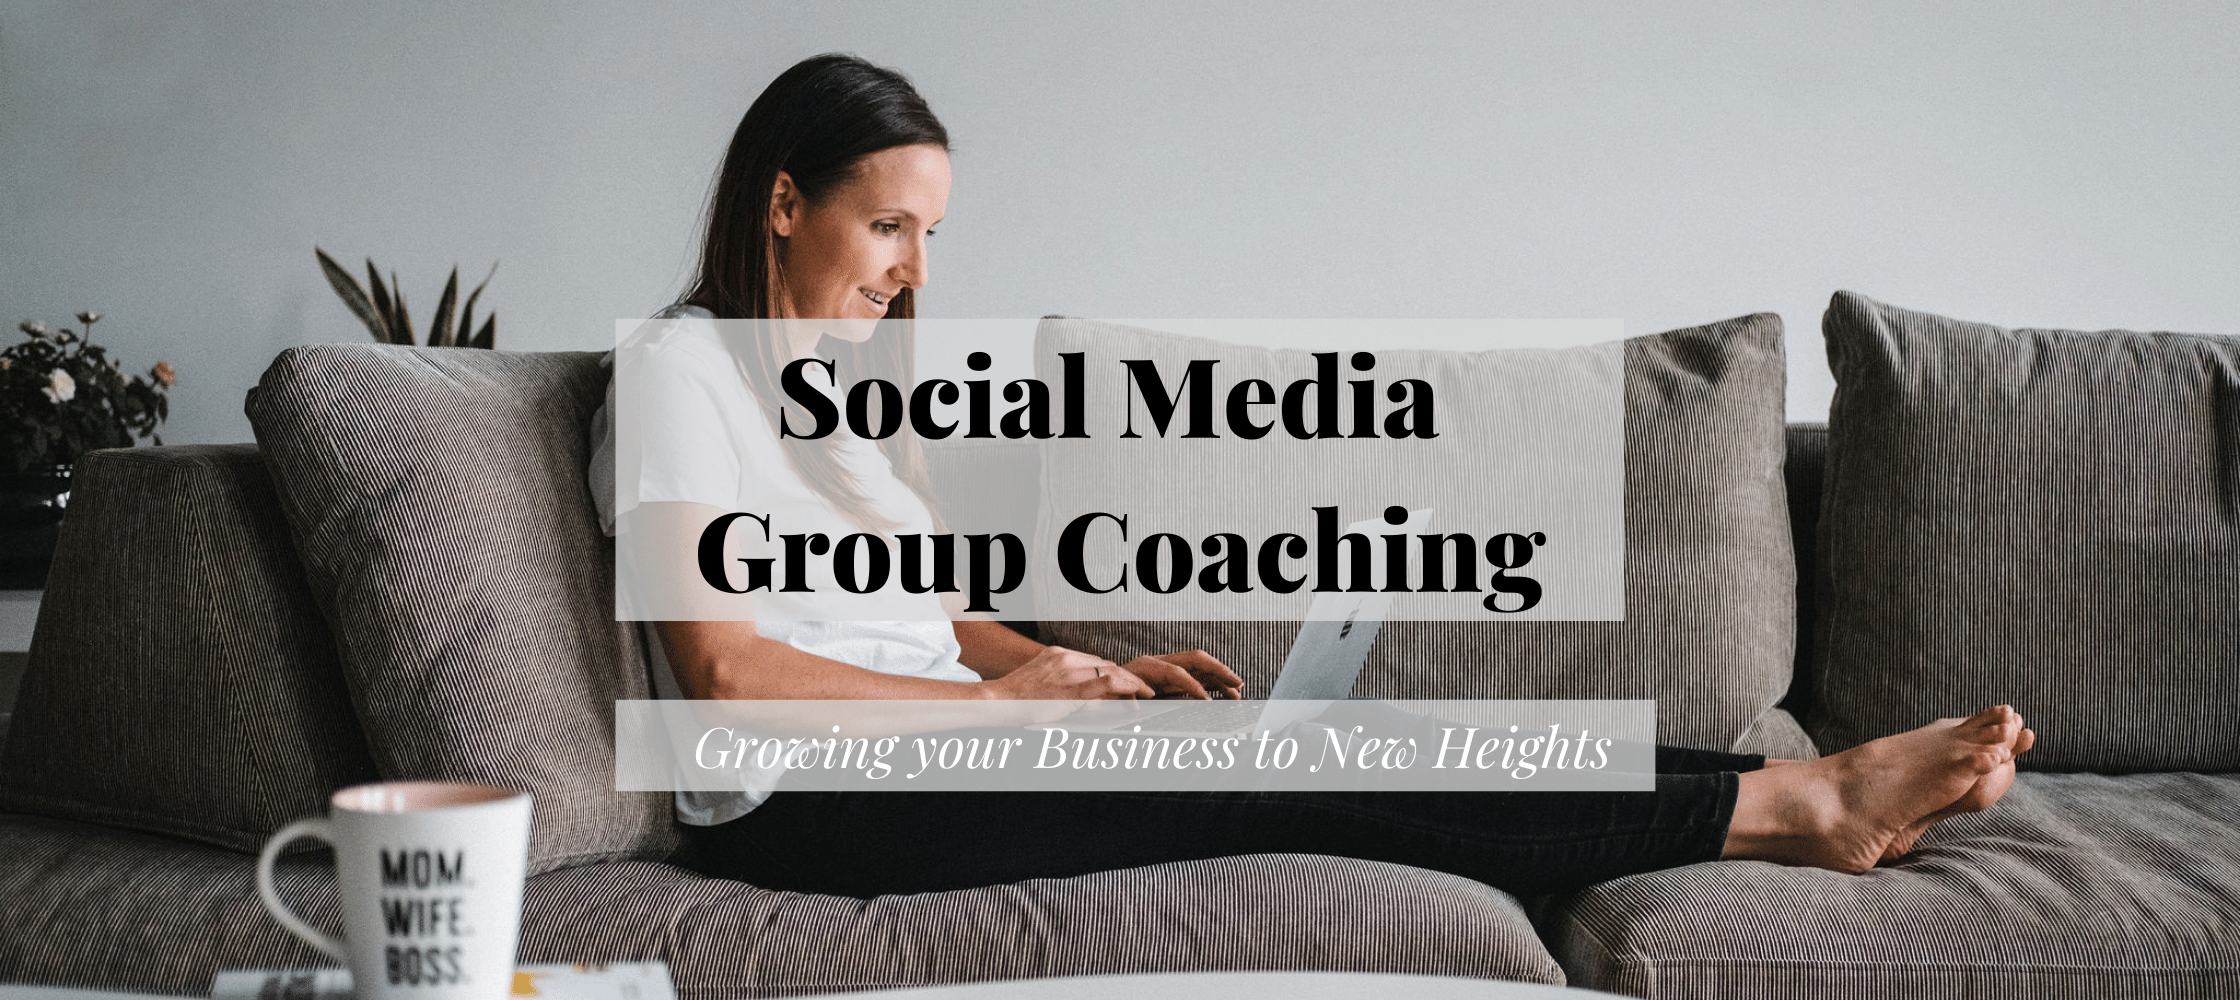 Social Media Group Coaching for Instagram Stories